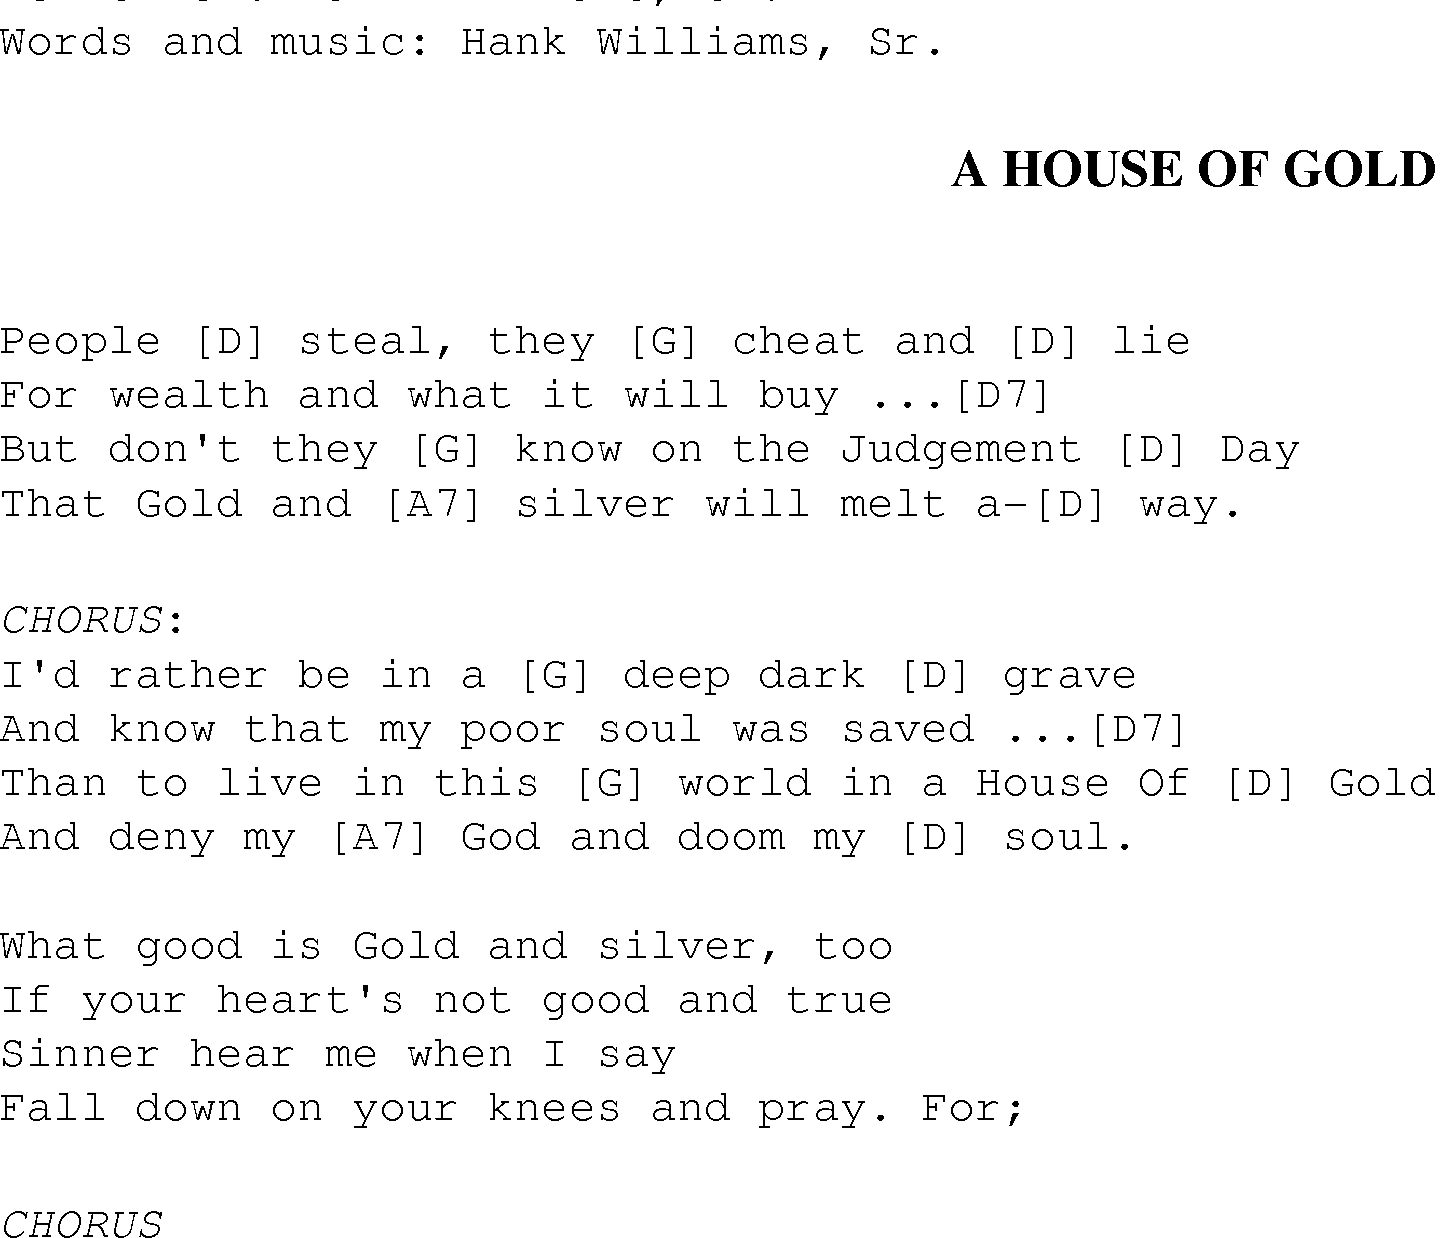 House Of Gold Chords A House Of Gold Christian Gospel Song Lyrics And Chords